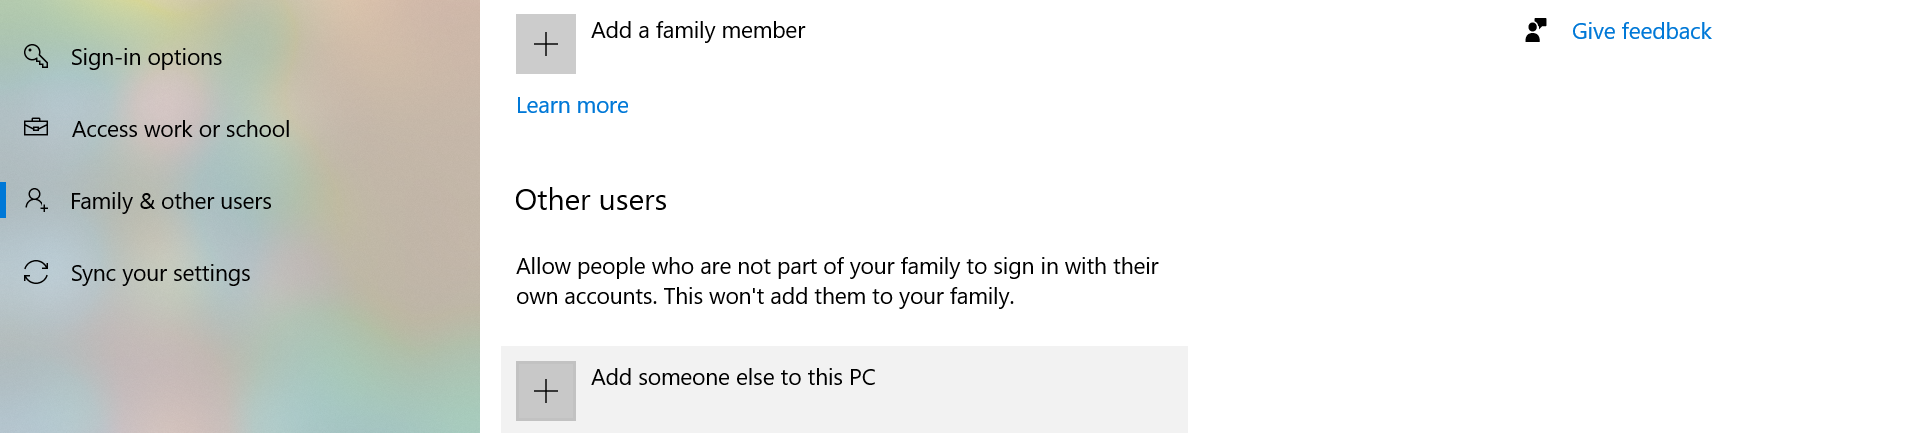 Add someone else to this PC option